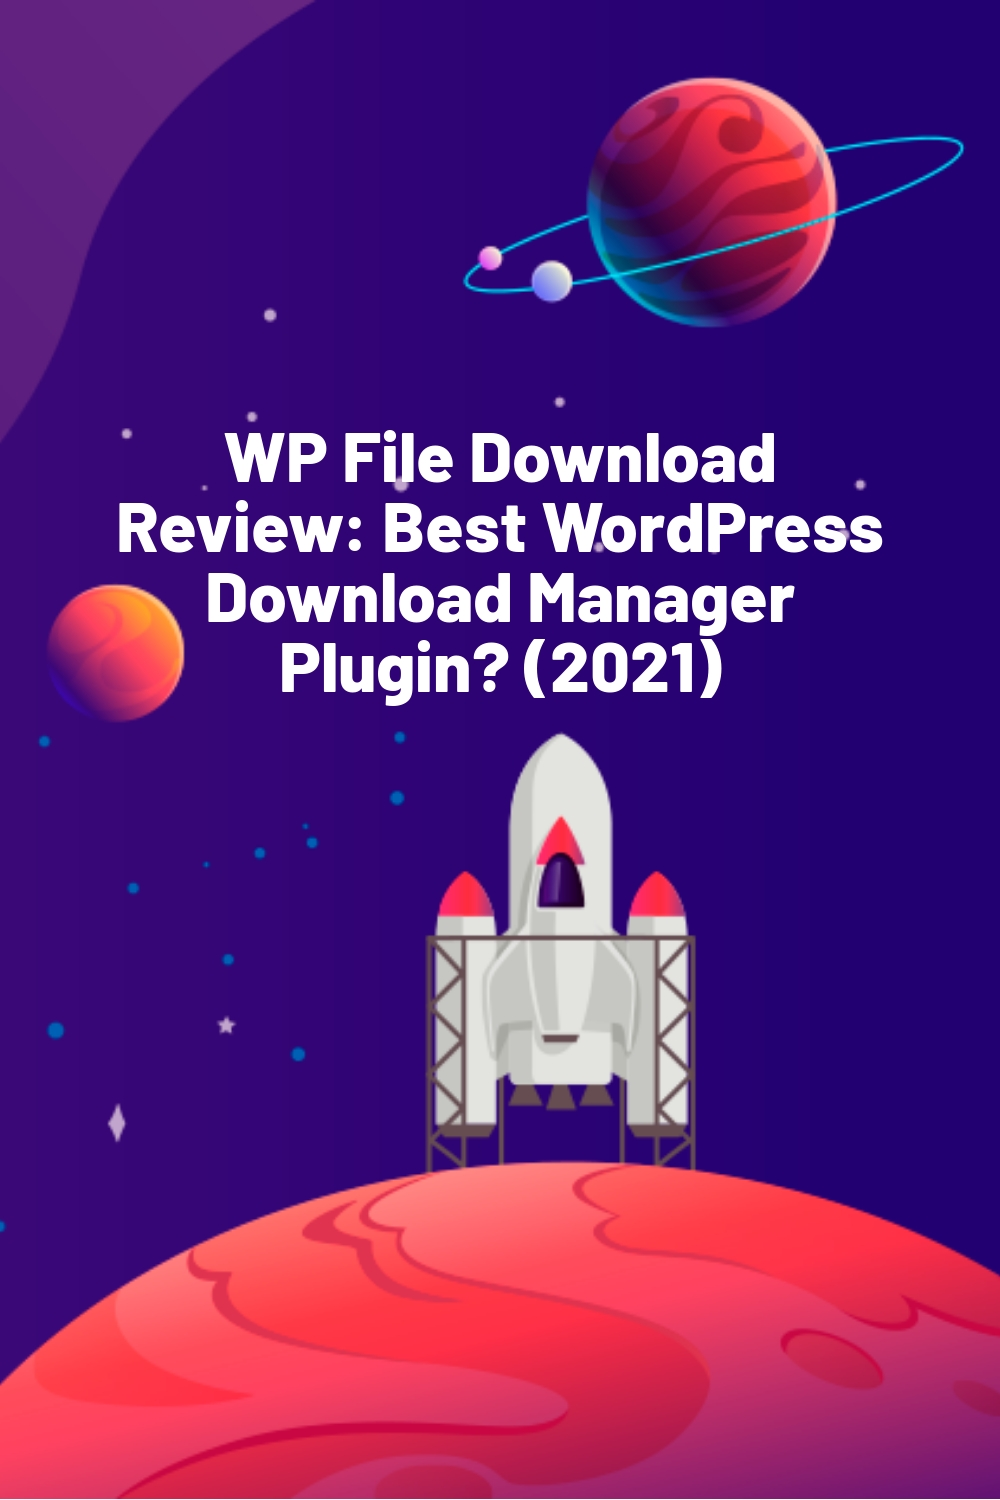 WP File Download Review: Best WordPress Download Manager Plugin? (2021)